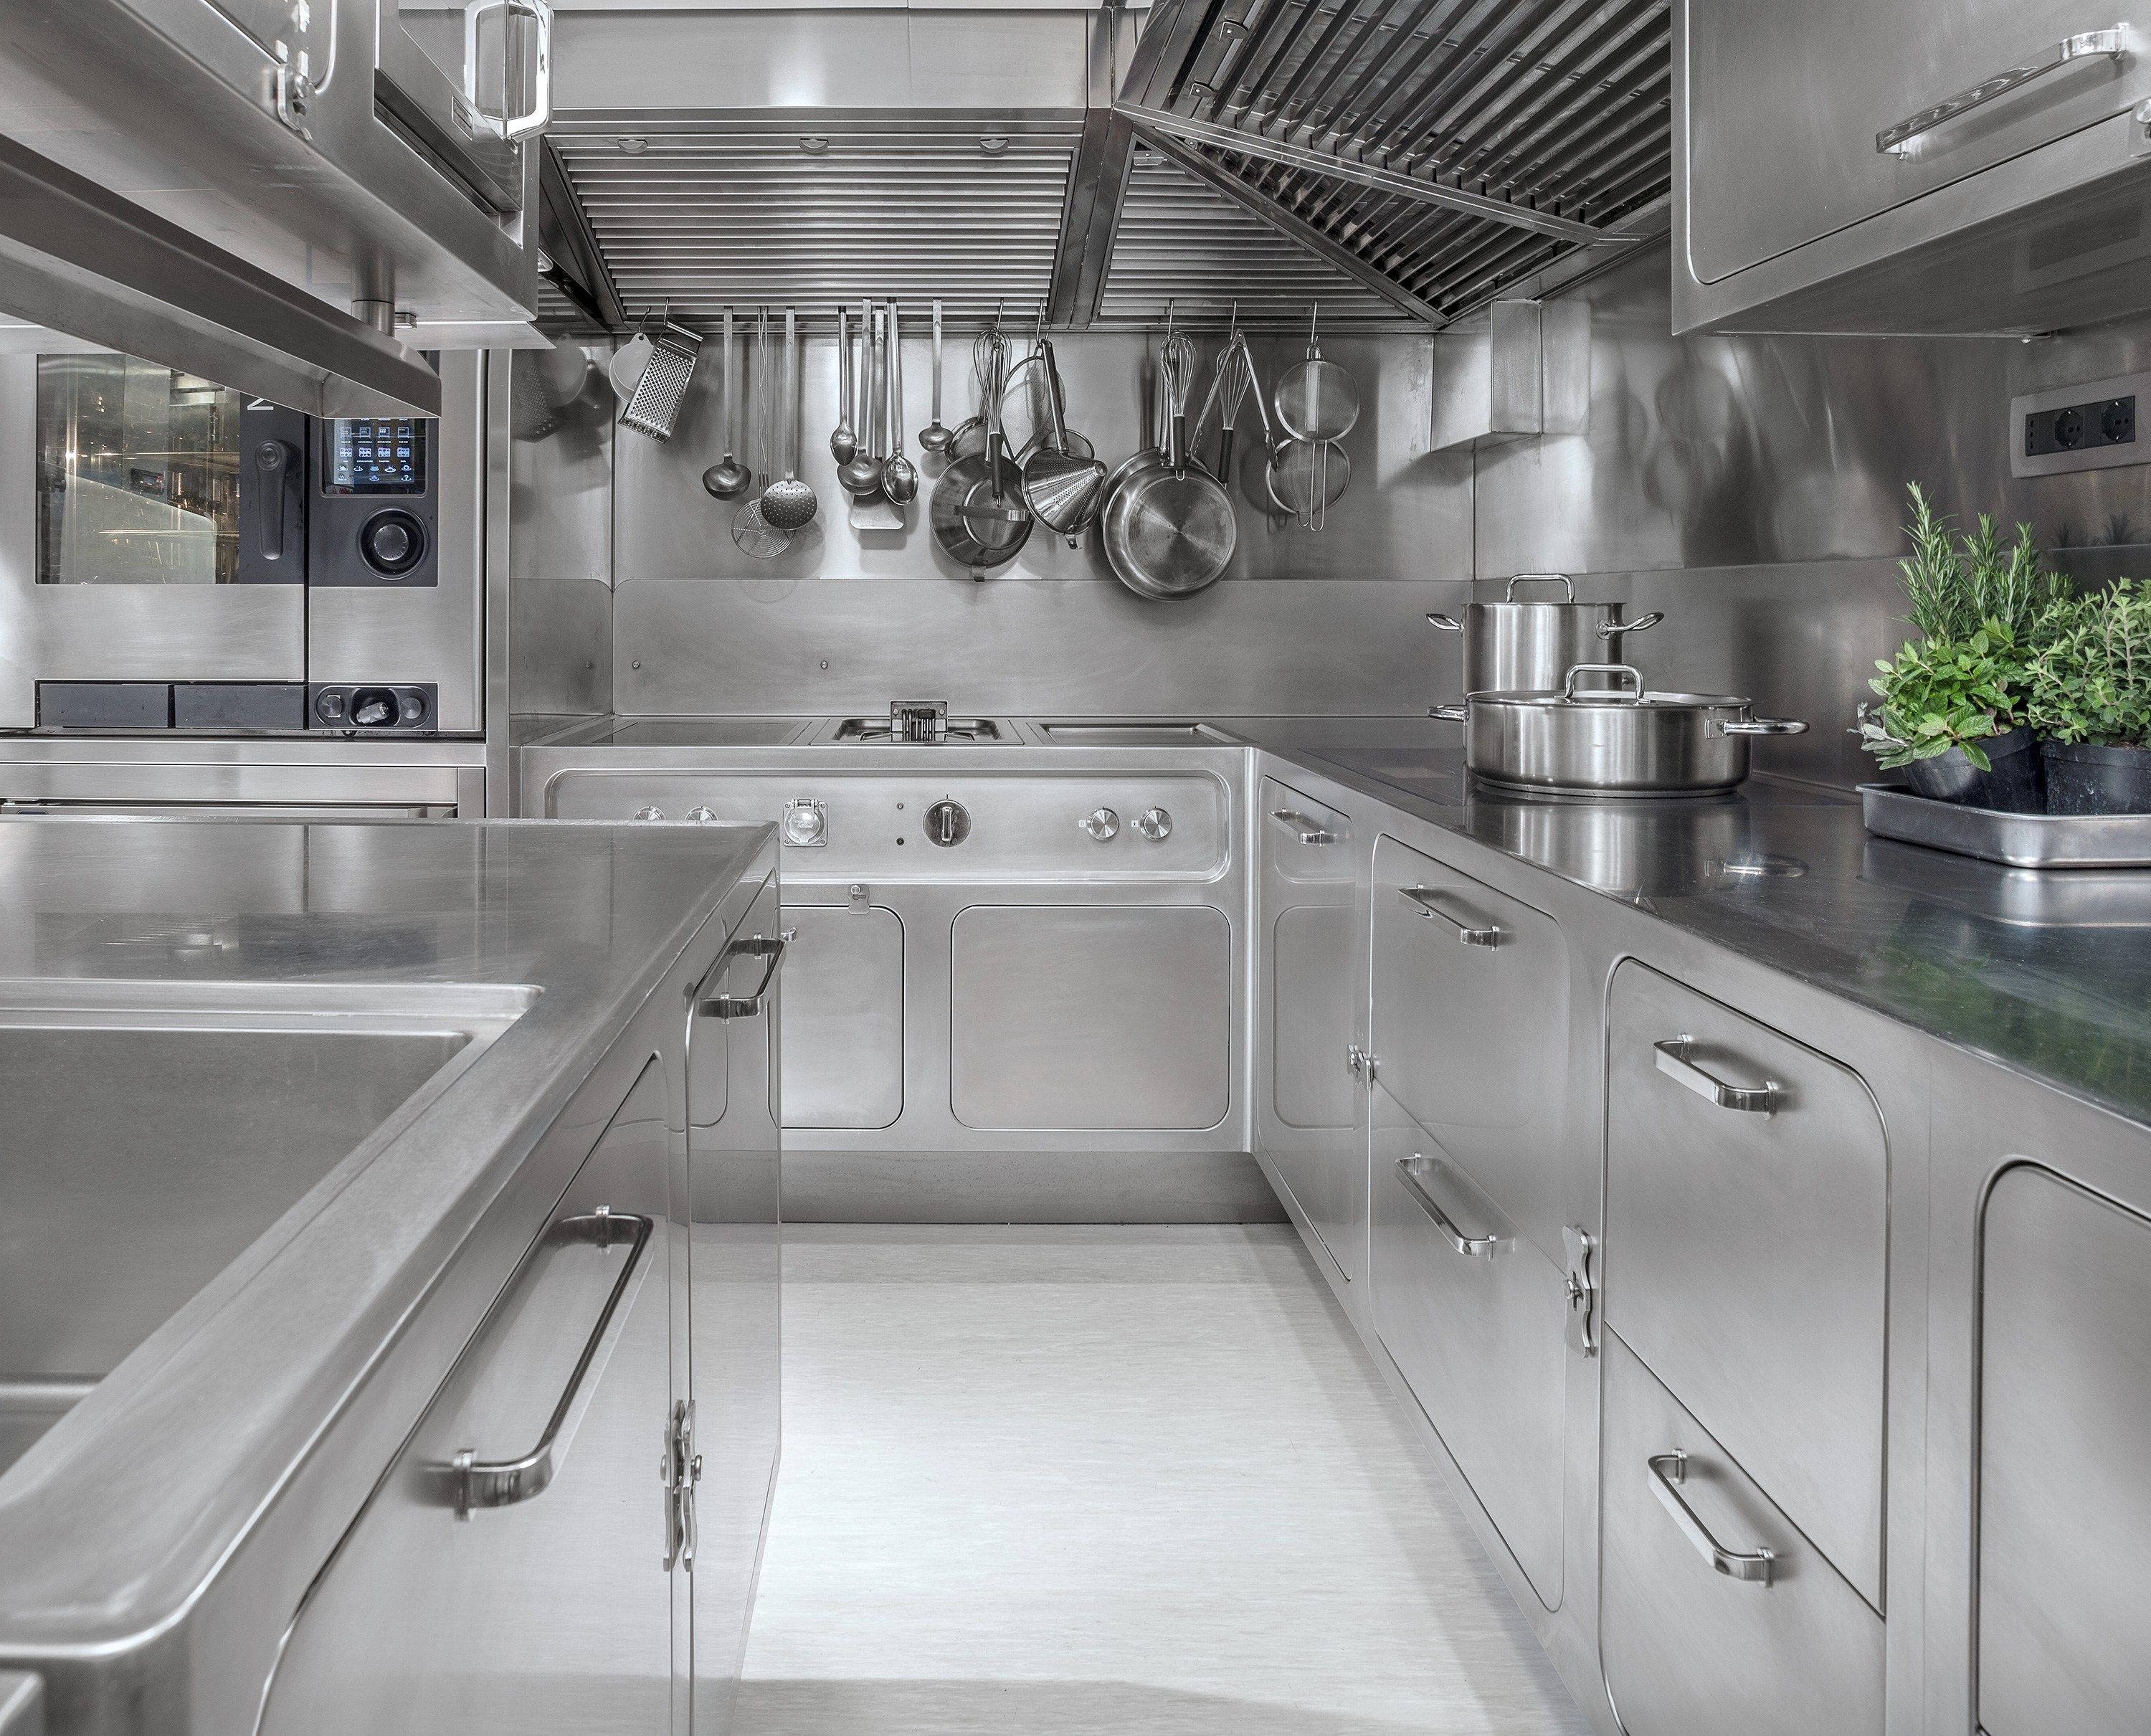 Professional stainless steel kitchen EGO by Abimis is a Prisma ...